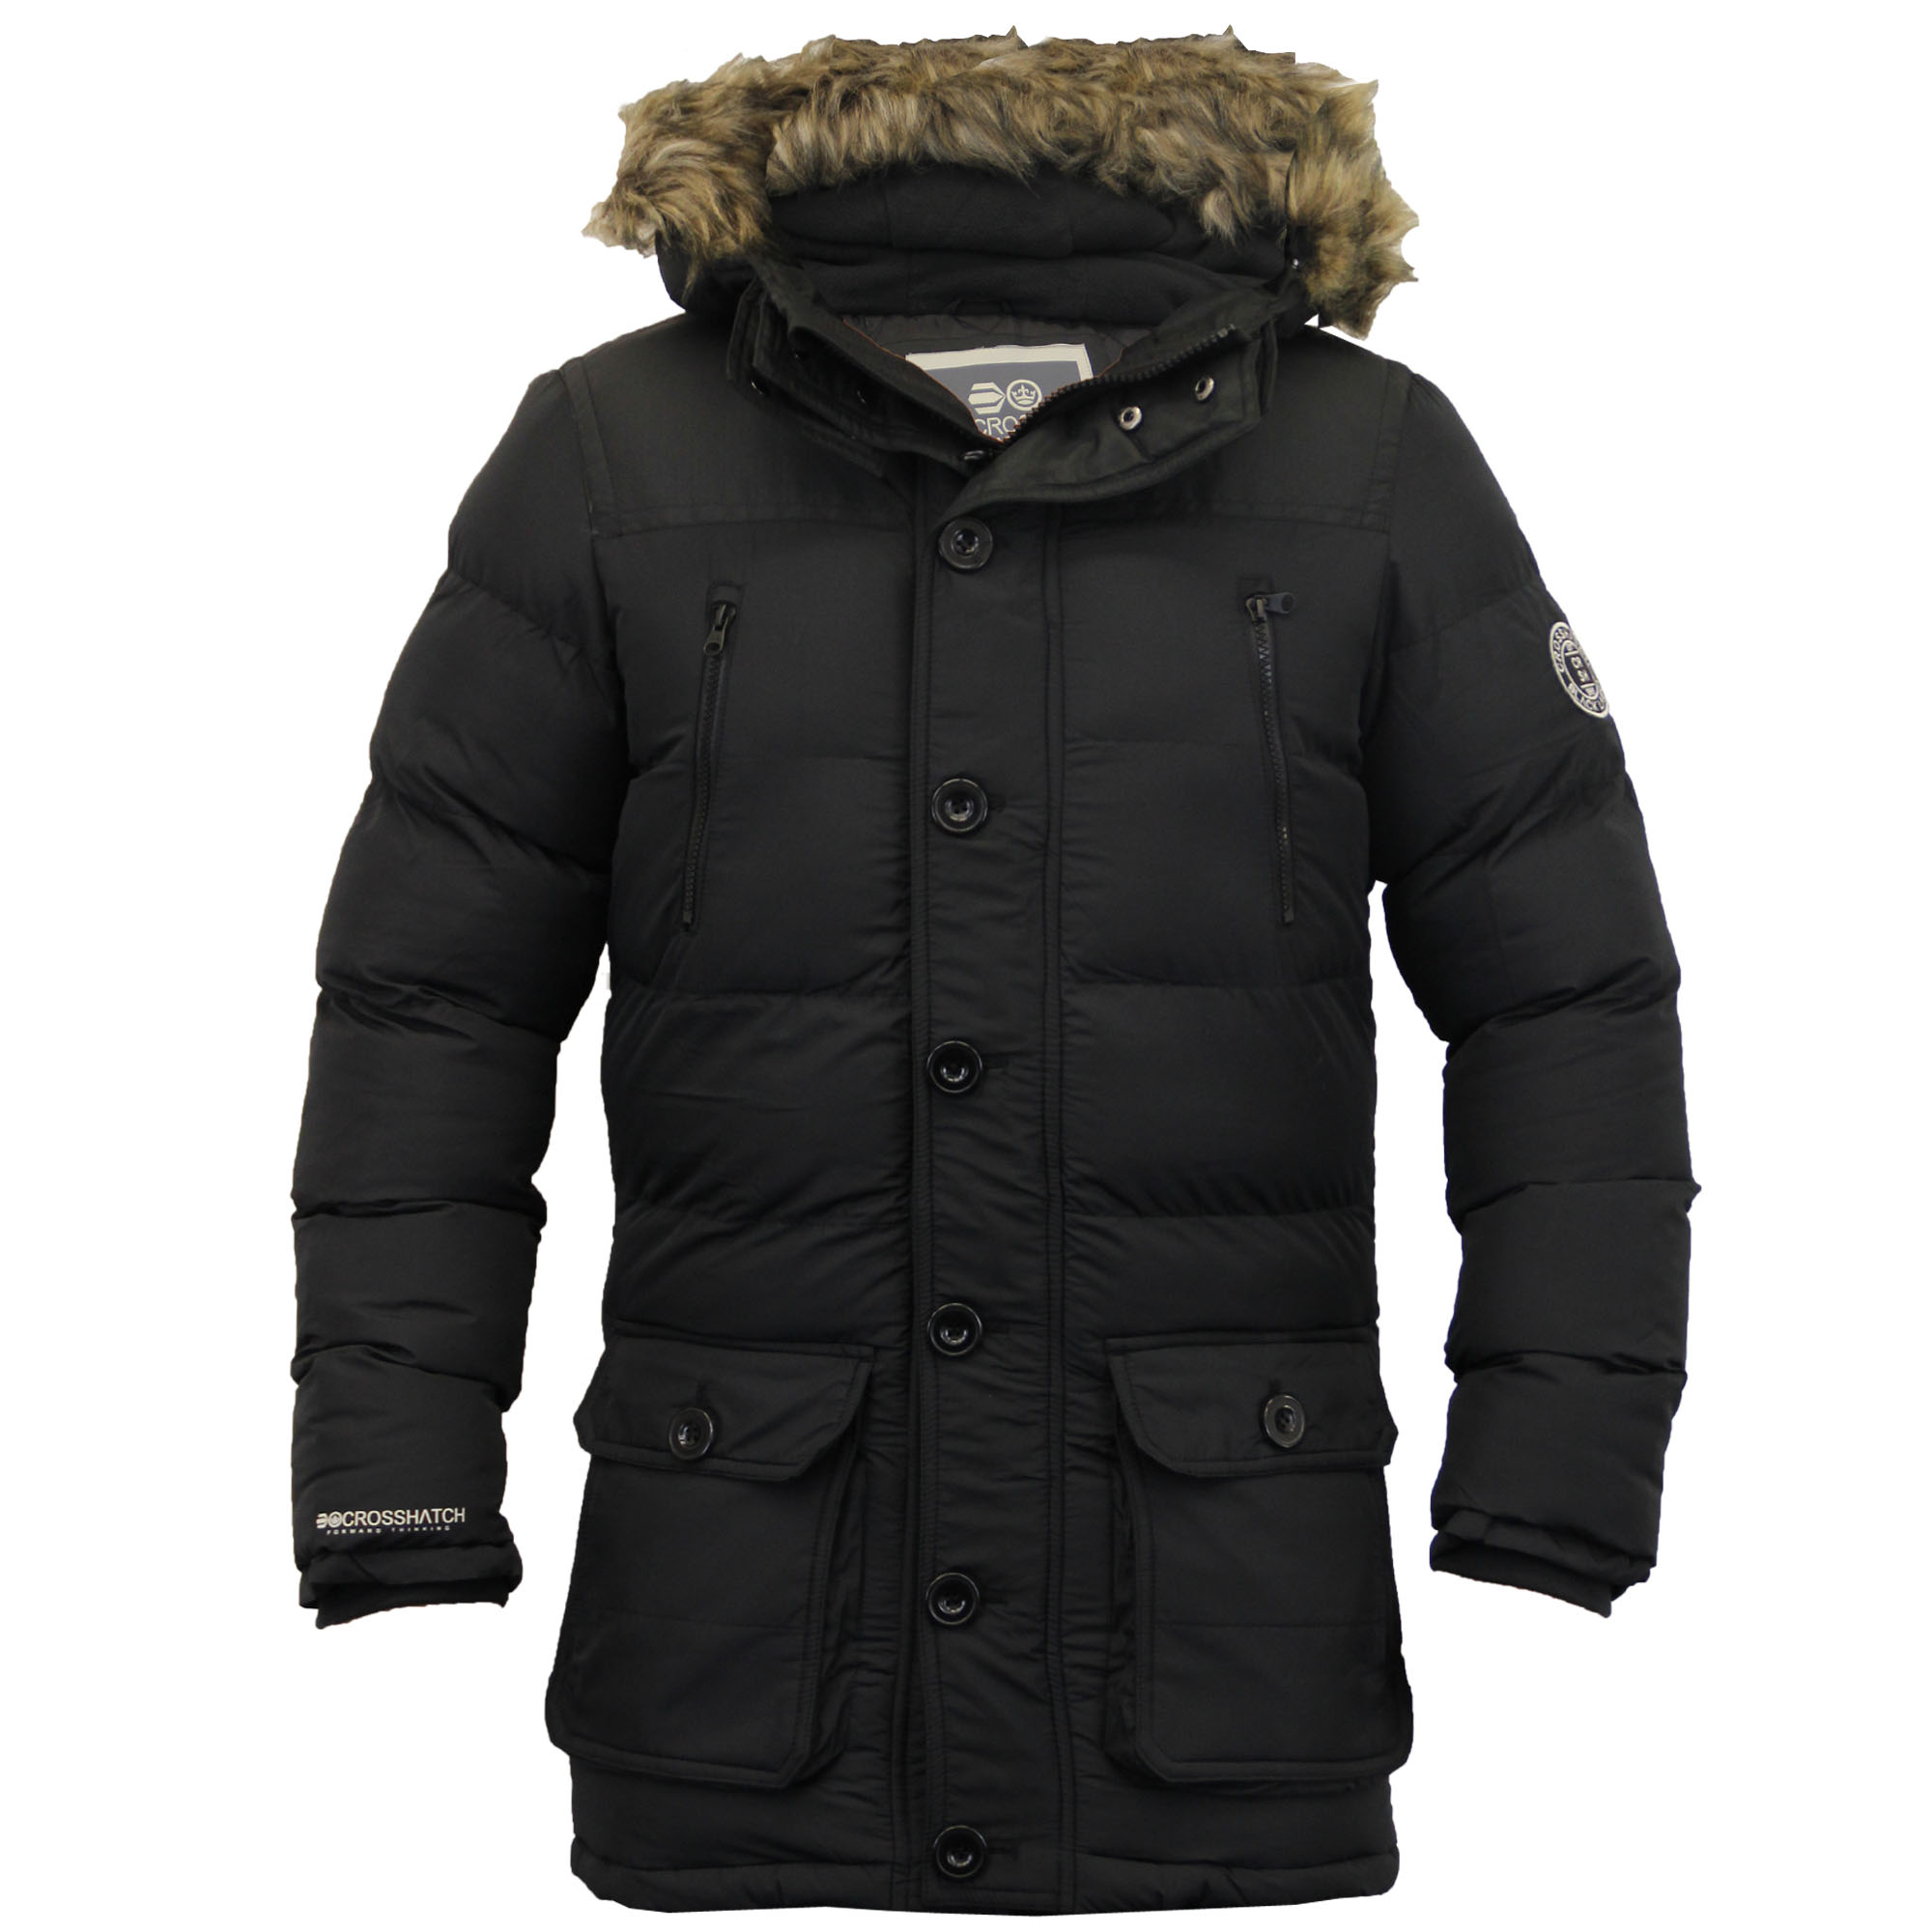 Discover men's parka coats and parka jackets at ASOS. From black parkas, fur lined parkas to hooded and waterproof parka jackets. Available today at ASOS. your browser is not supported. To use ASOS, we recommend using the latest versions of Chrome, Firefox, Safari or Internet Explorer.